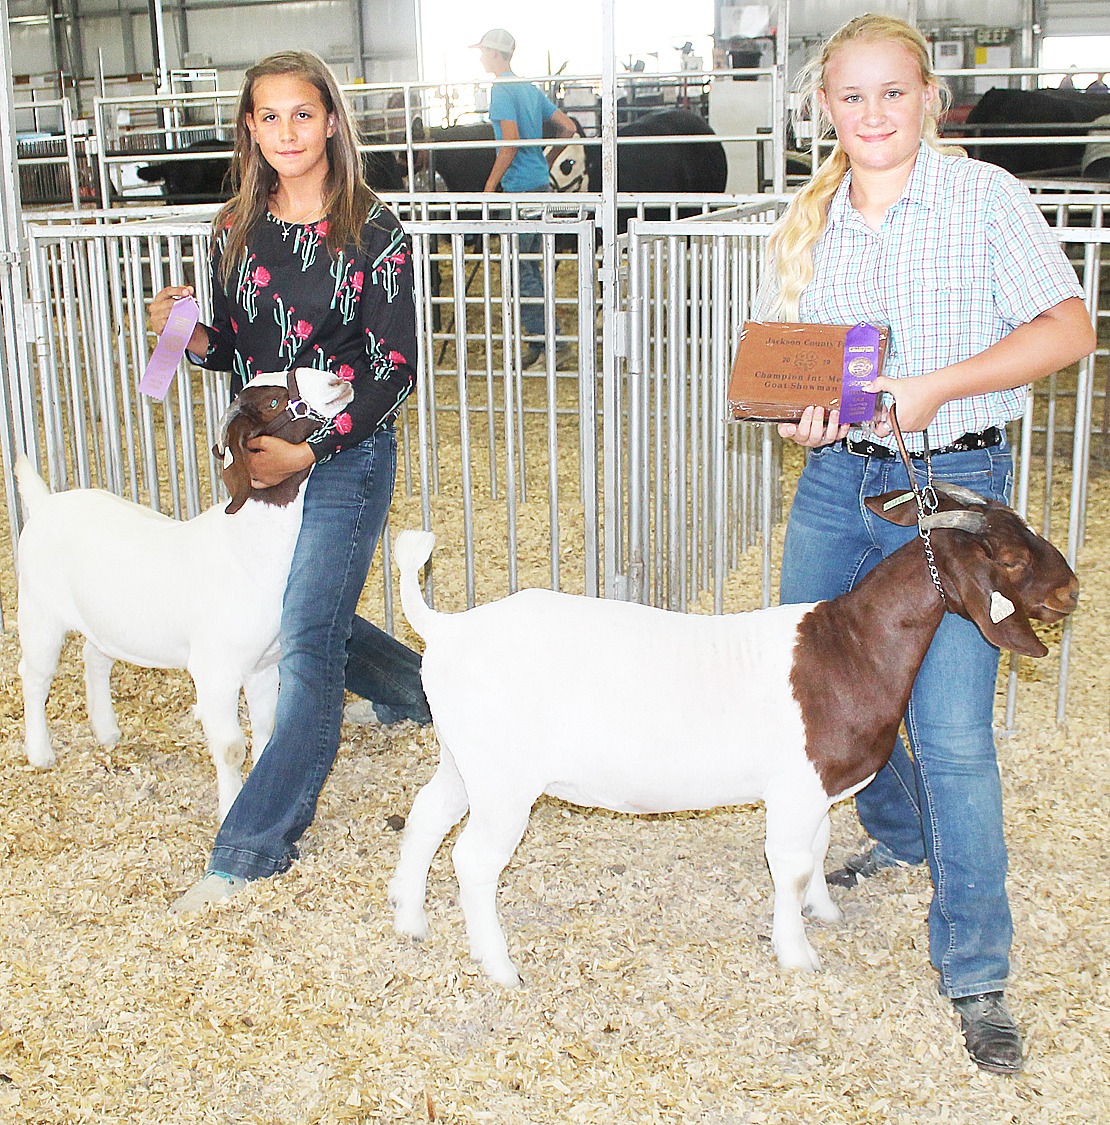 Savannah Cattrell, Isabelle Stephens - Intermediate Goat Showmanship